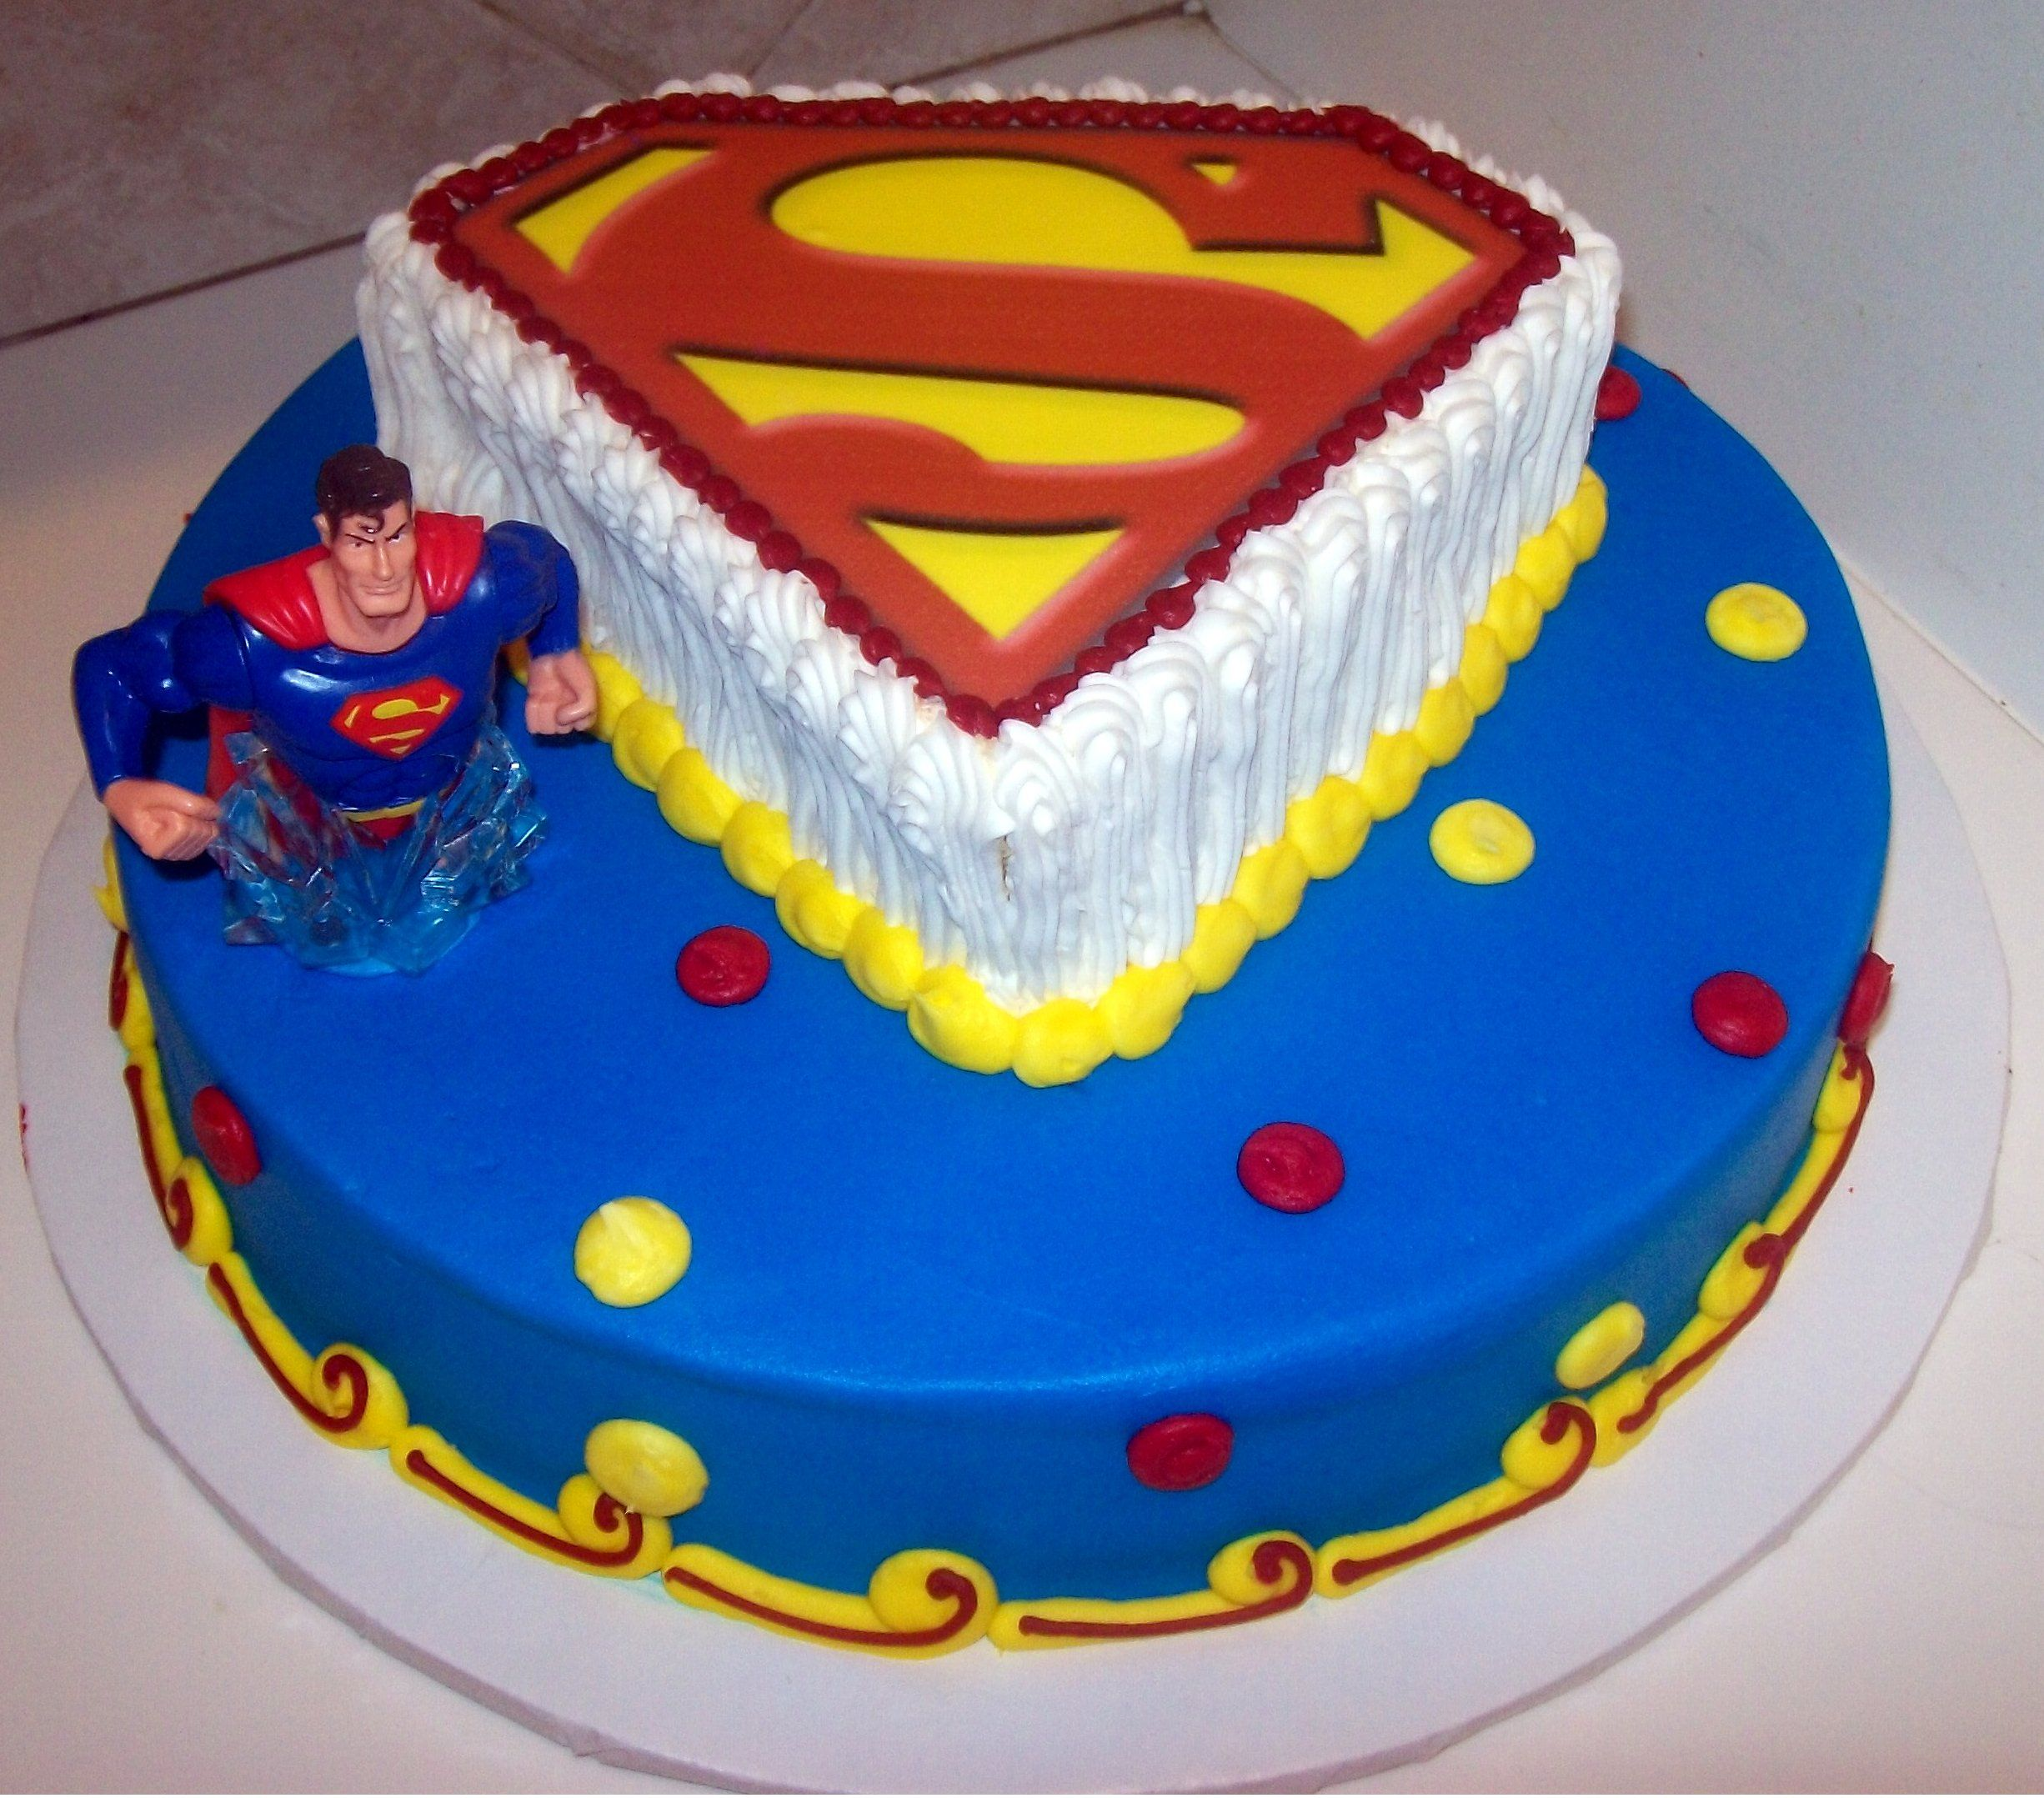 You can choose a cake that only features the Superman logo